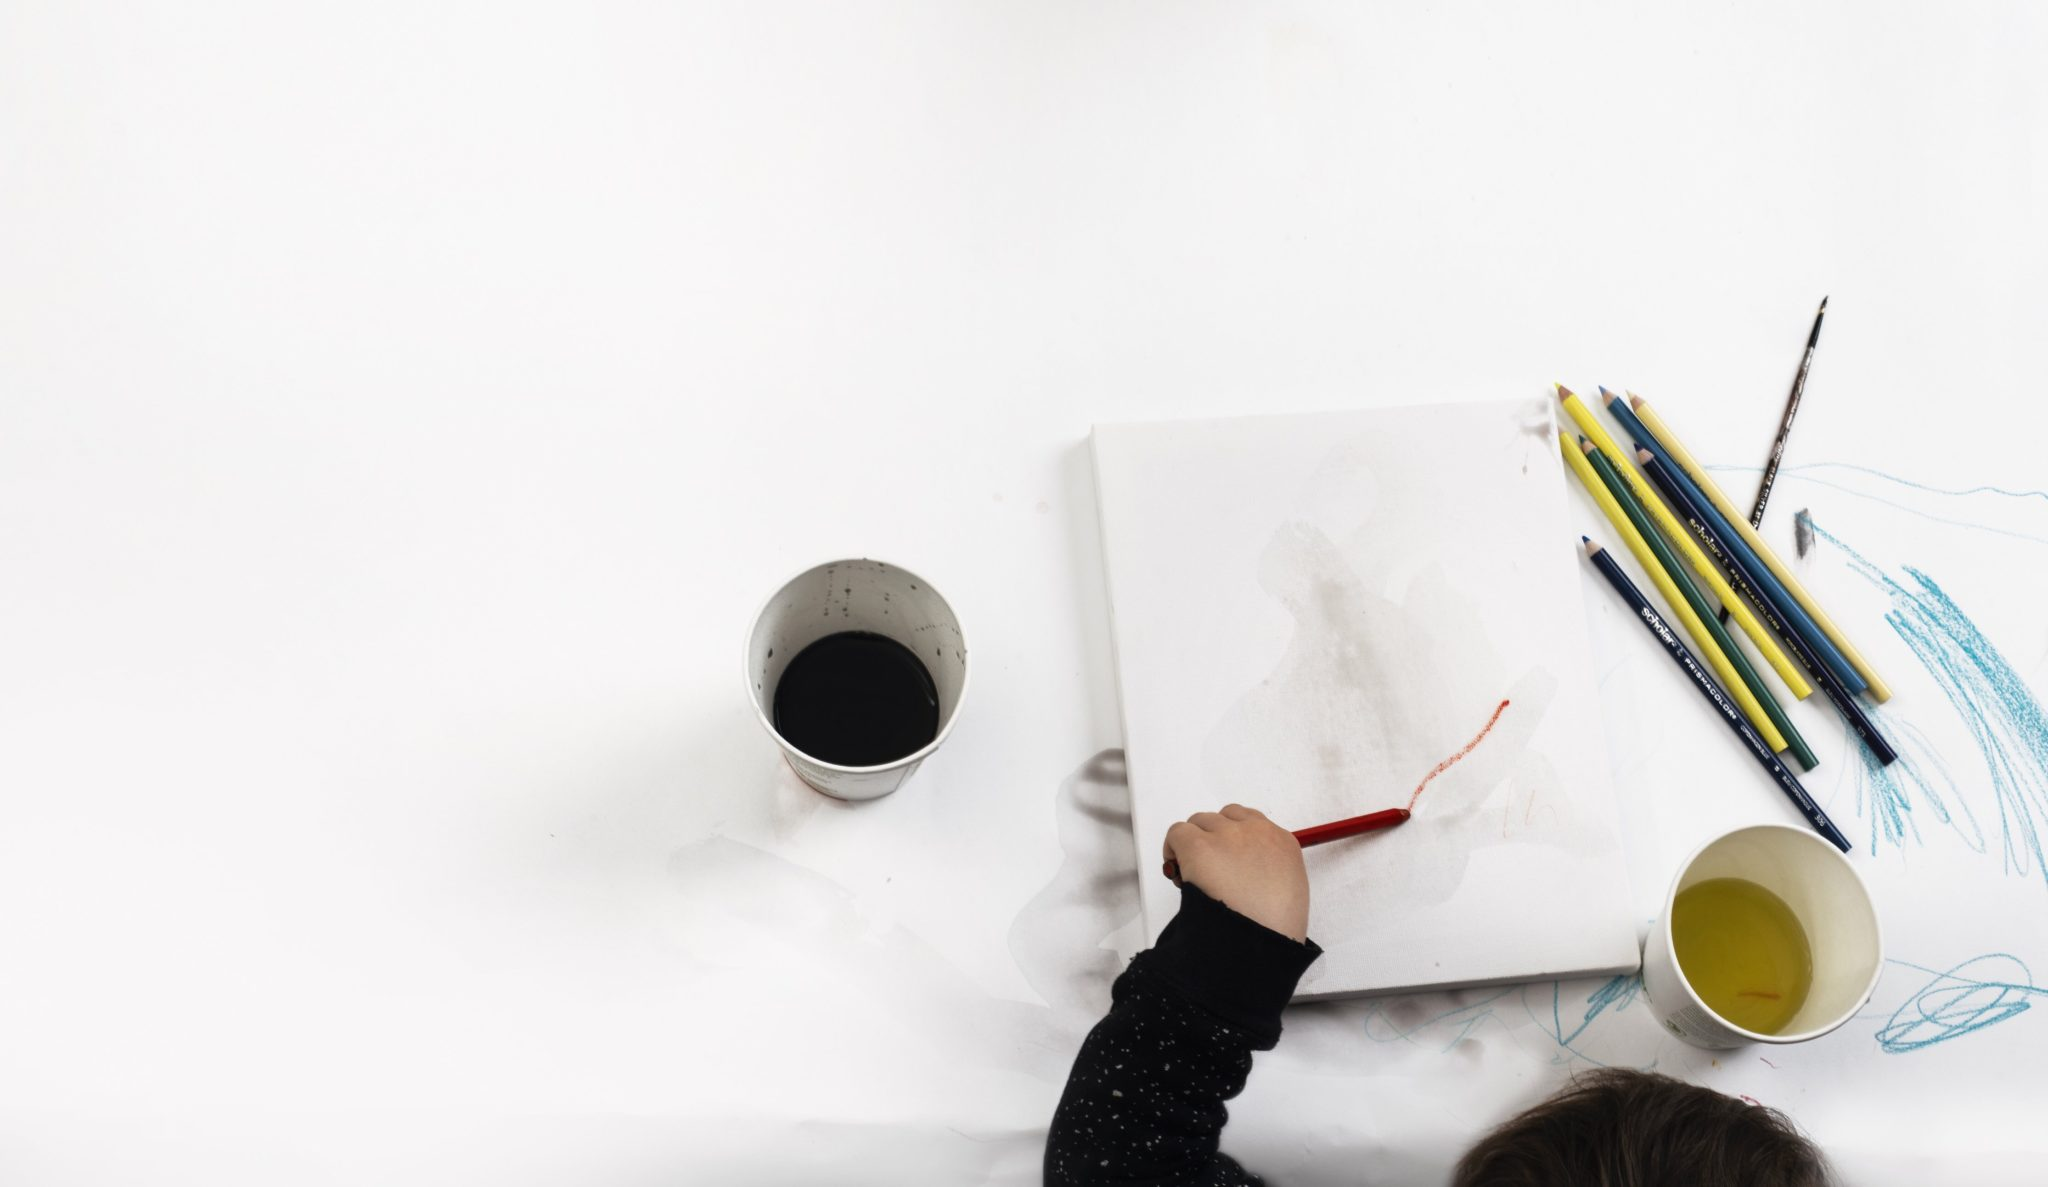 Child painting with art supplies